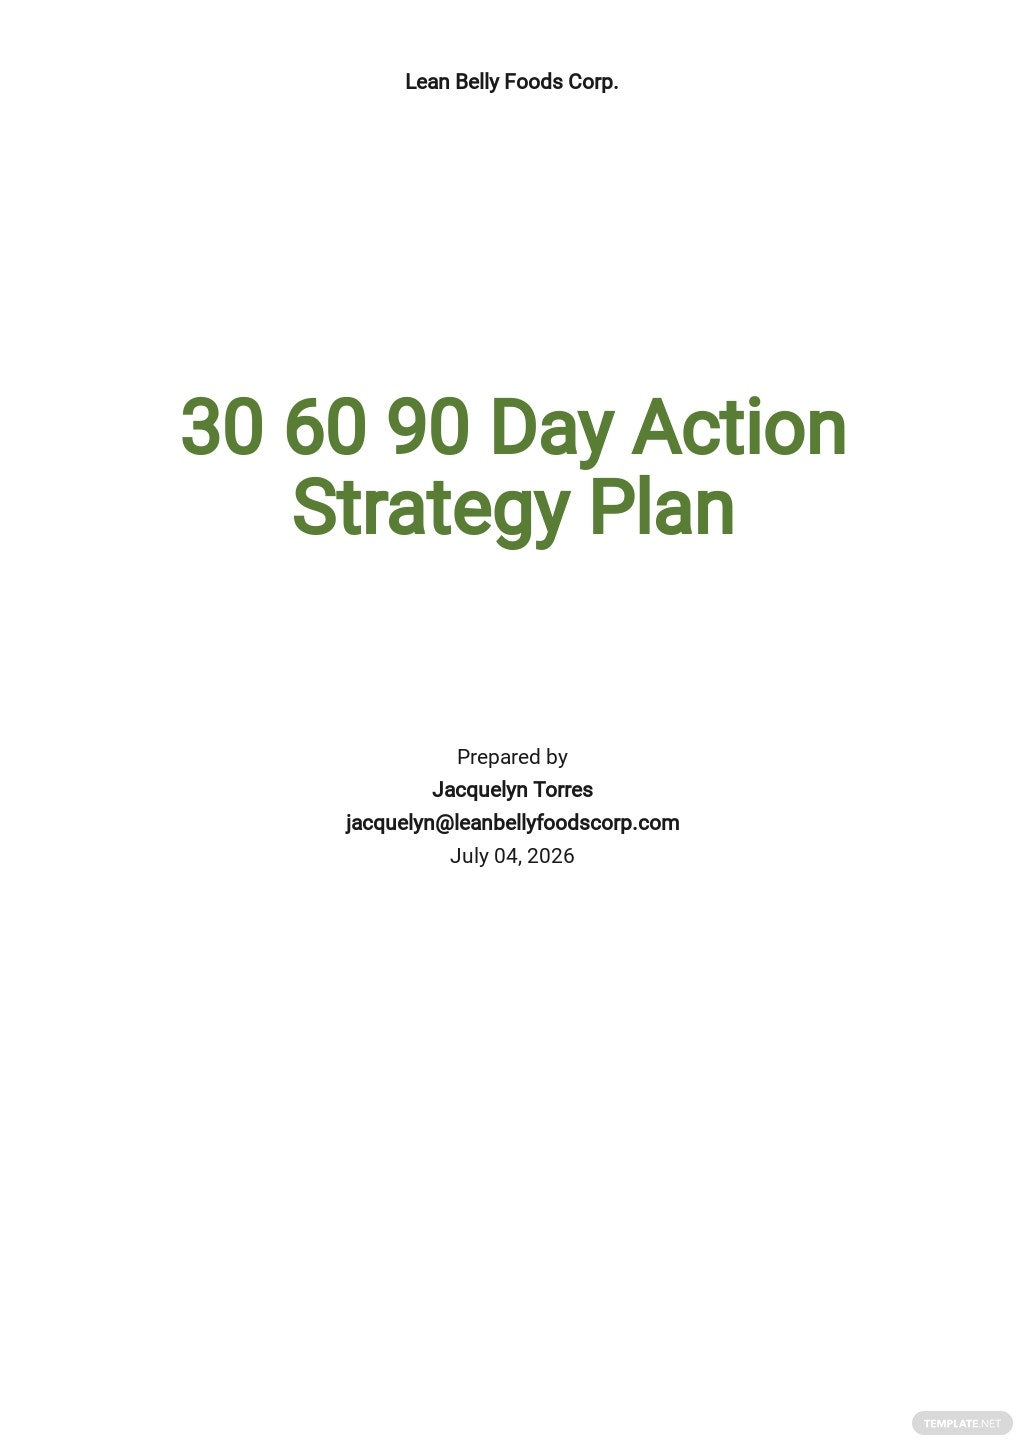 30 60 90 Days Action Plan Strategy Template [Free PDF] - Google Docs, Word, Apple Pages